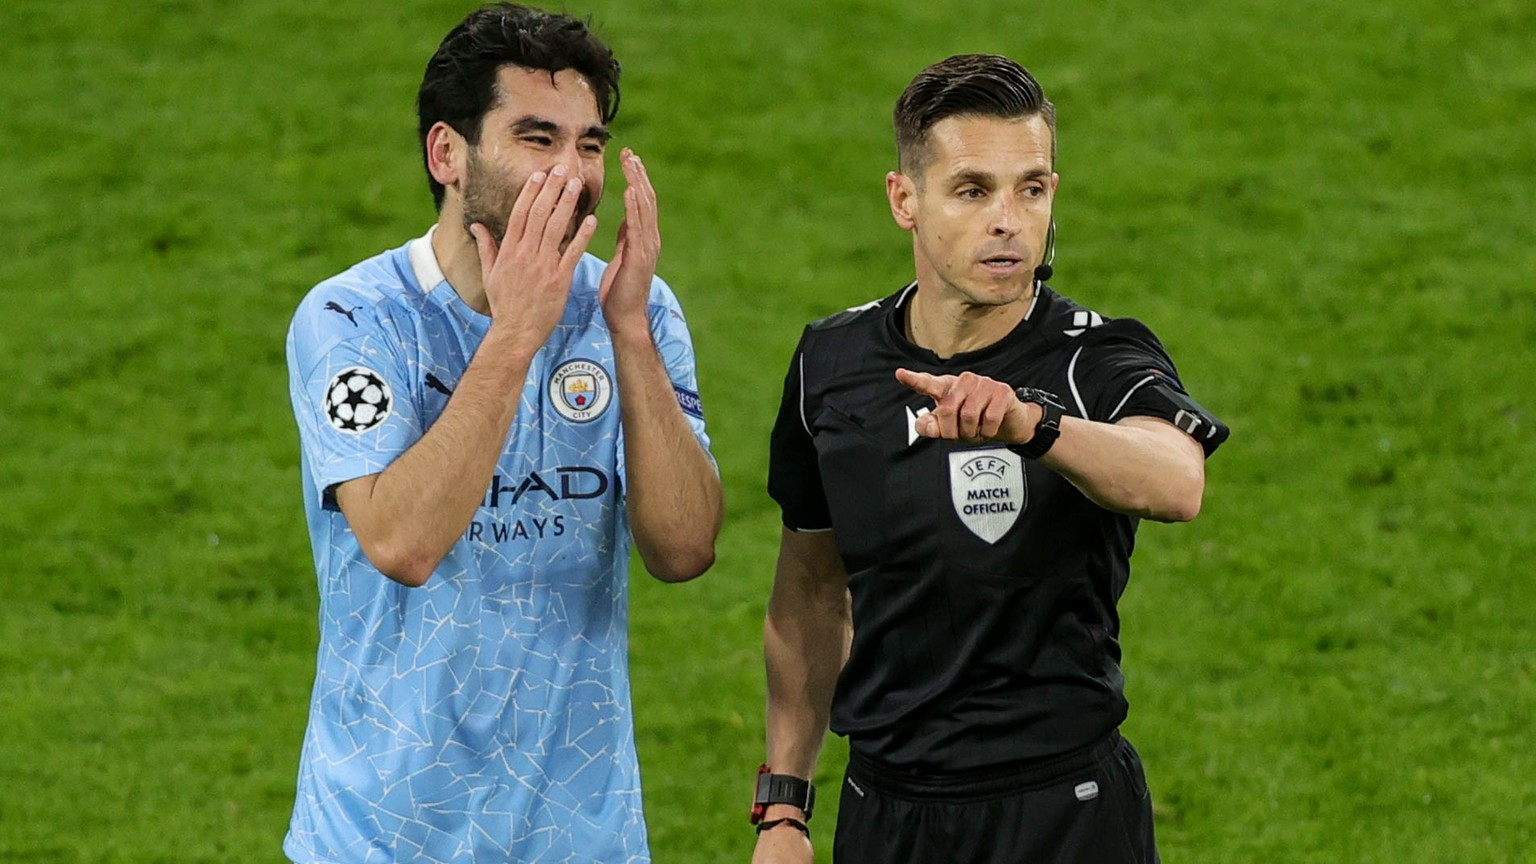 epa09135883 Manchester City's Ilkay Gundogan (L)  reacts next to referee Carlos del Cerro Grande  during the UEFA Champions League quarter final, second leg soccer match between Borussia Dortmund and Manchester City in Dortmund, Germany, 14 April 2021.  EPA/FRIEDEMANN VOGEL / POOL